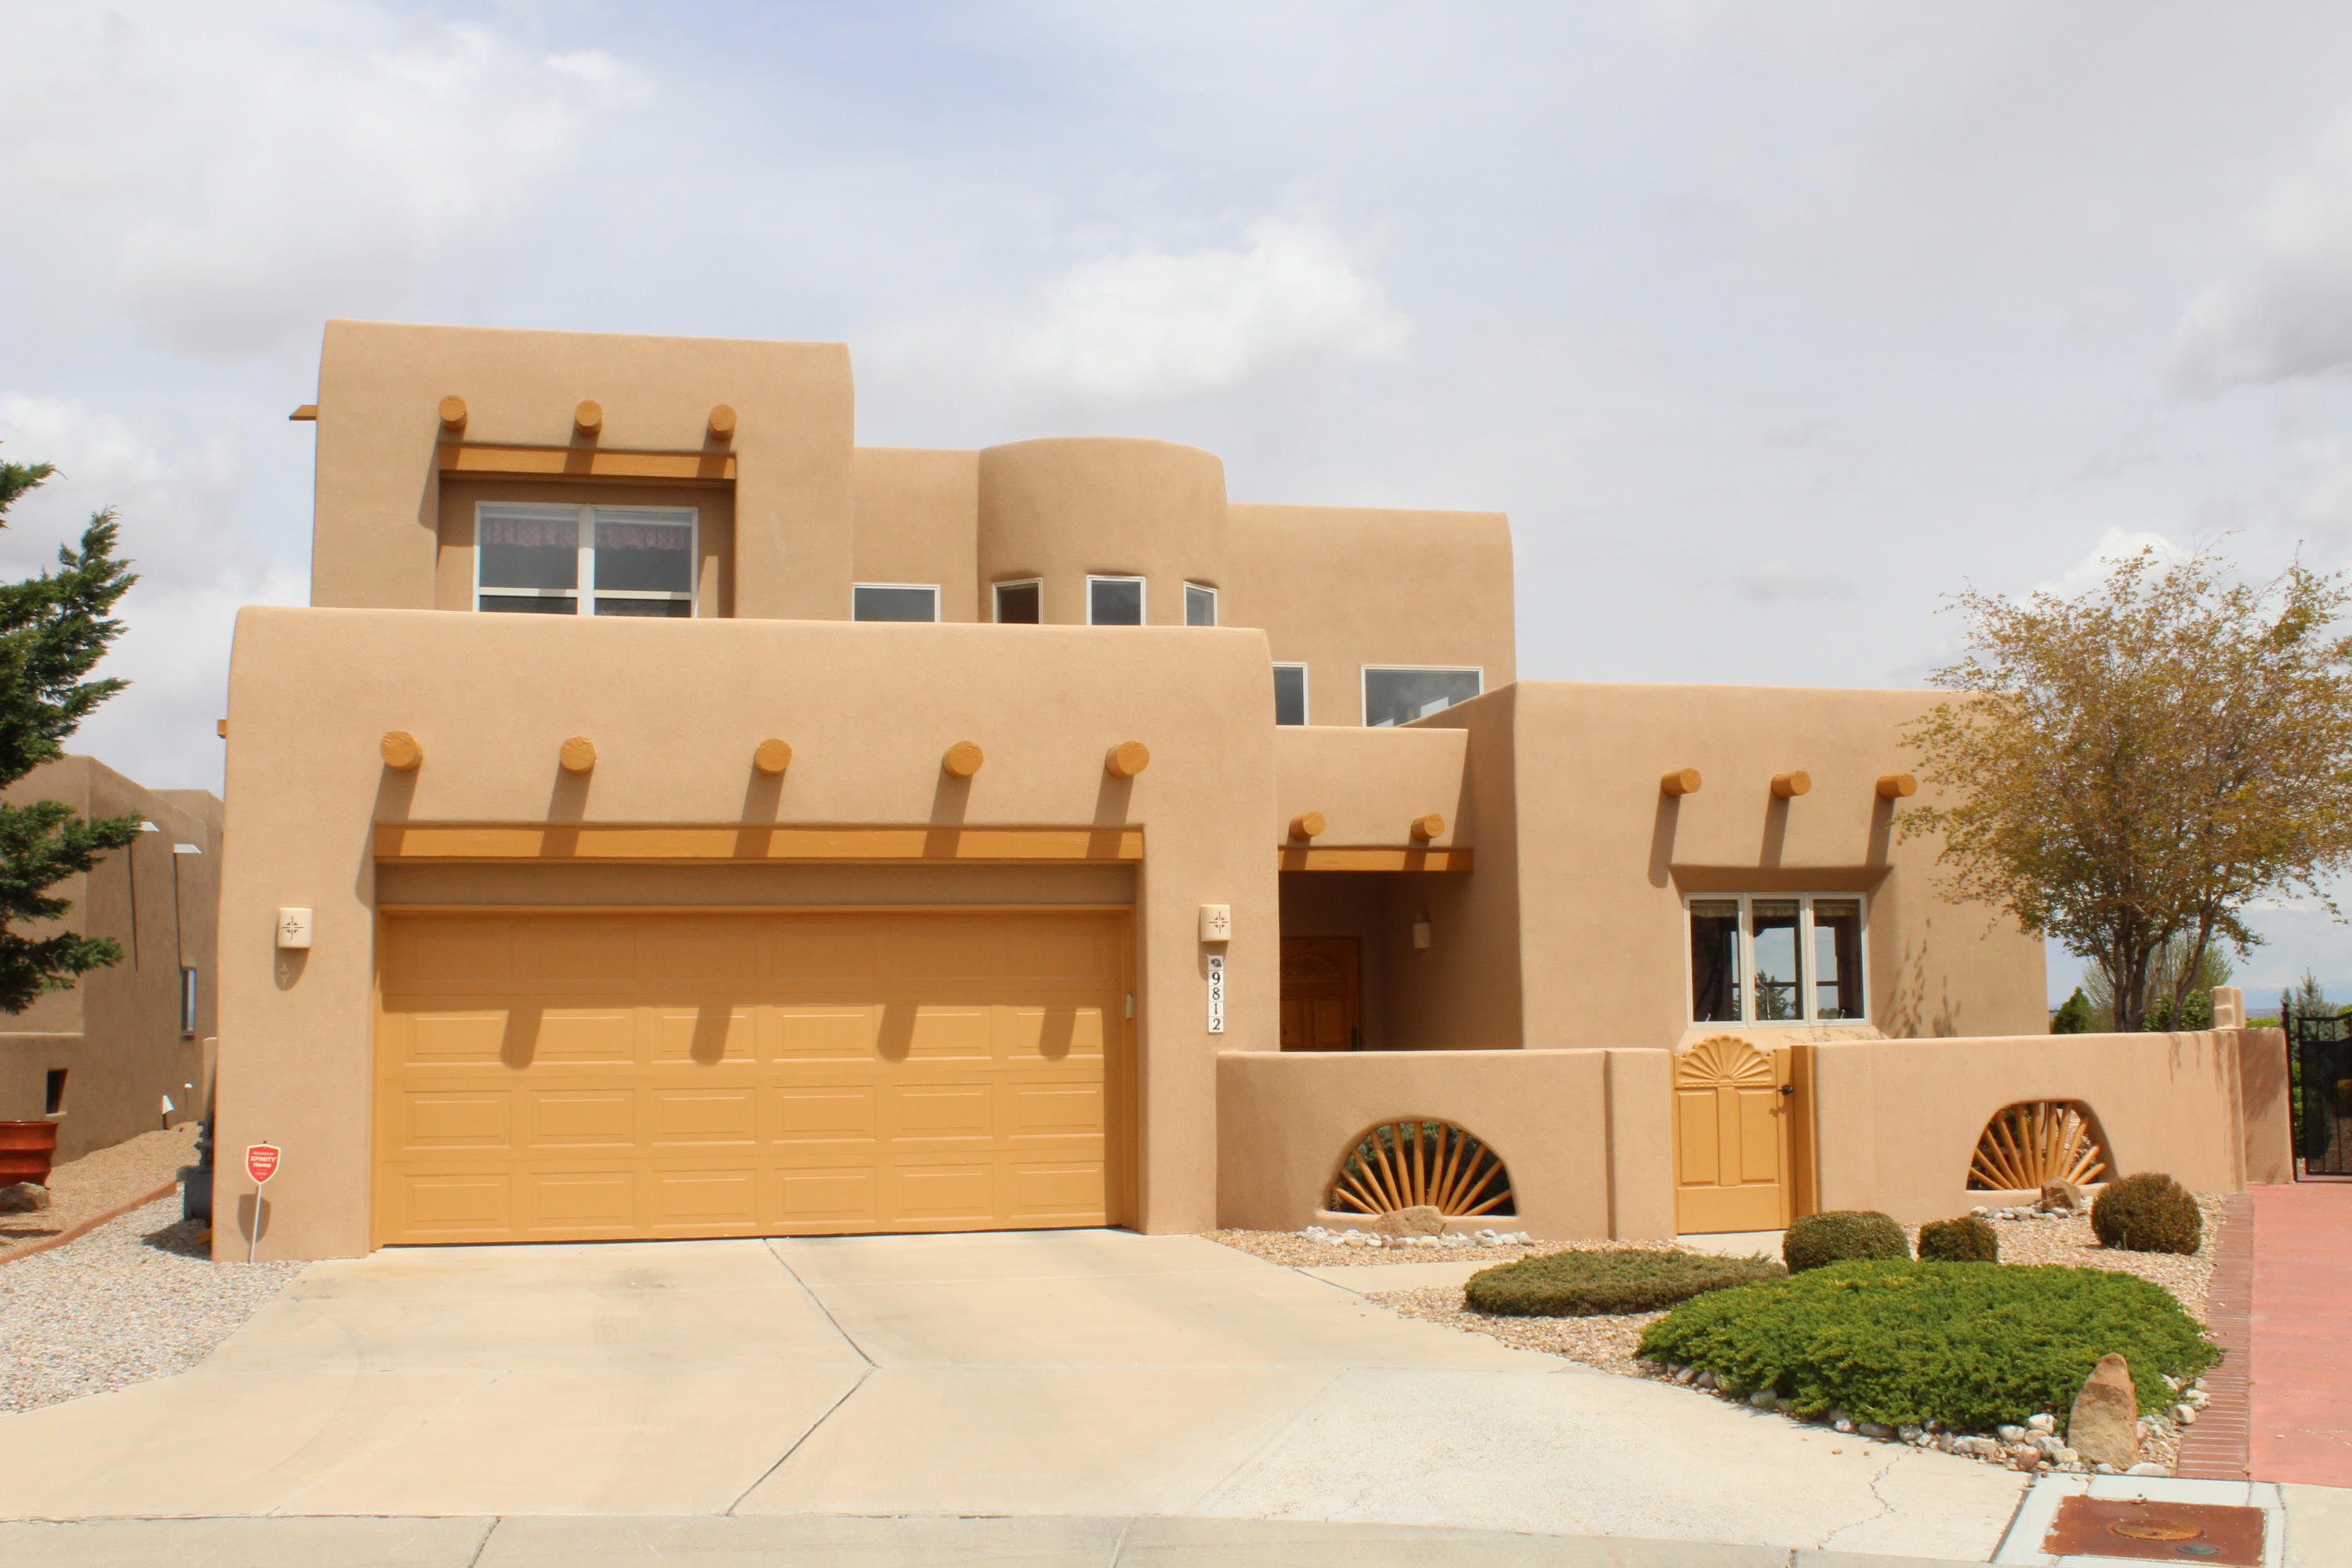 9812 NW Bajada Drive, Northwest Albuquerque and Northwest Heights, New Mexico